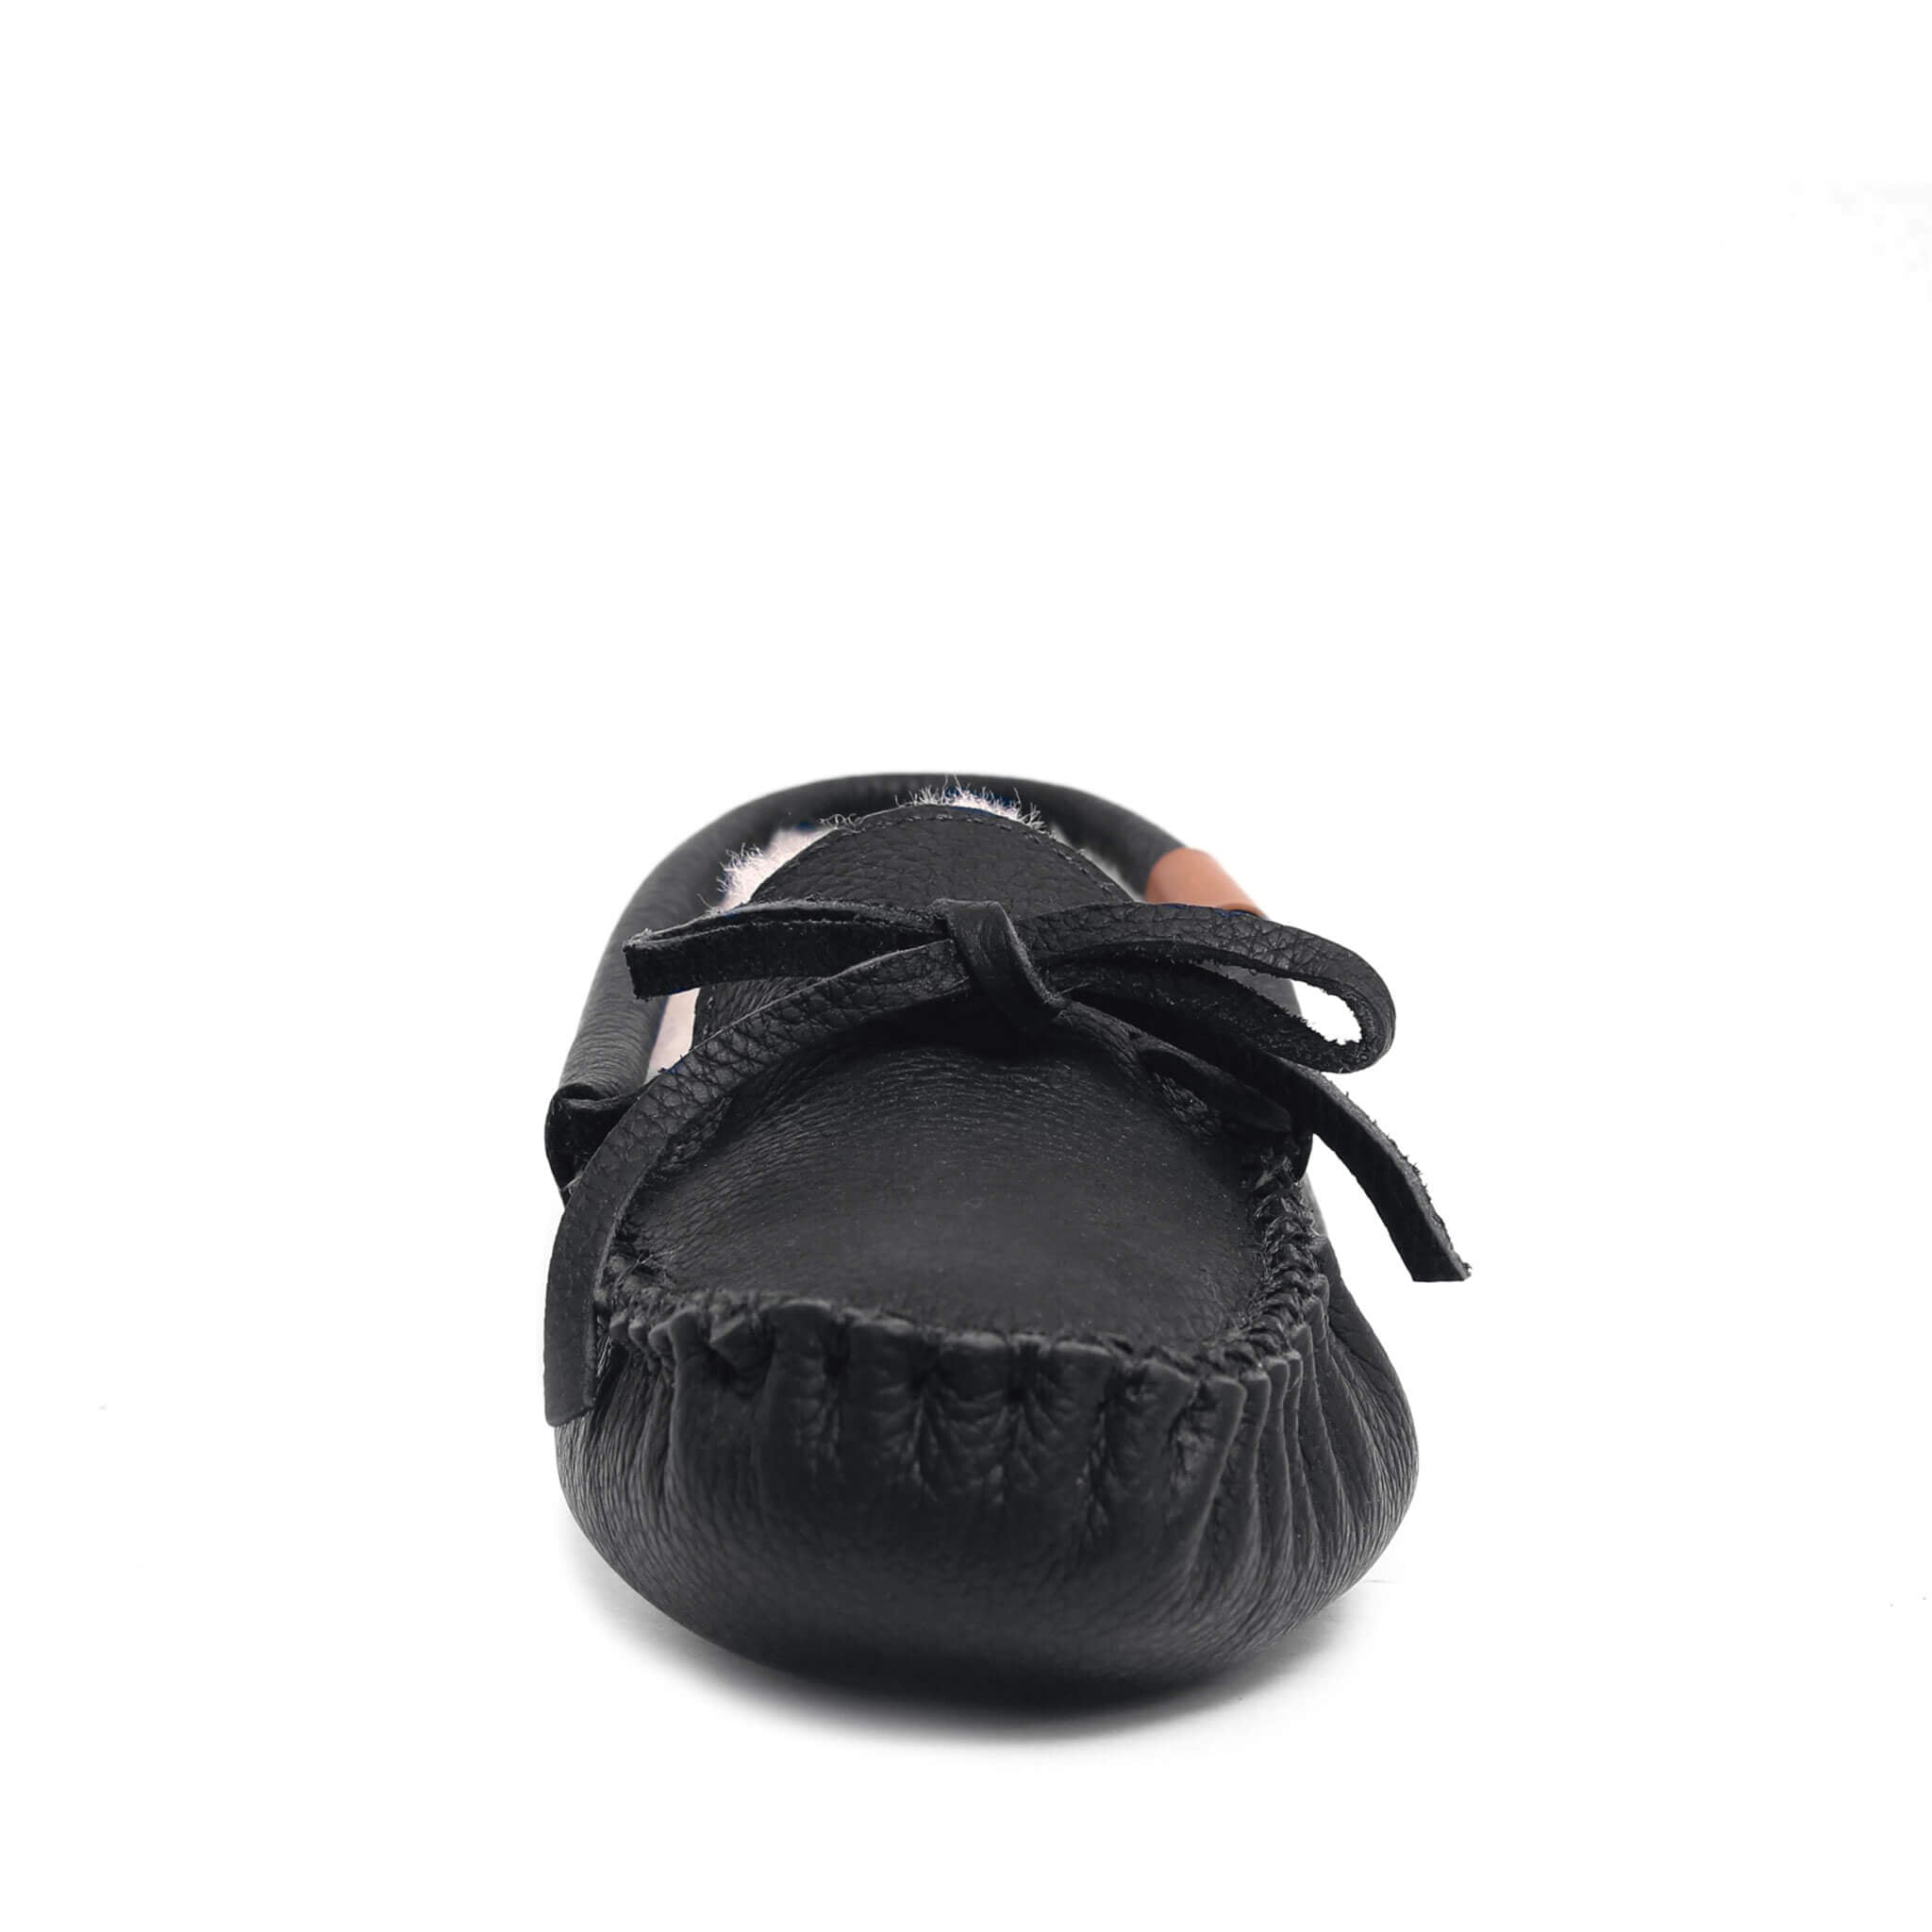 AMIMOC- Lenno grizzly black moccasin for men